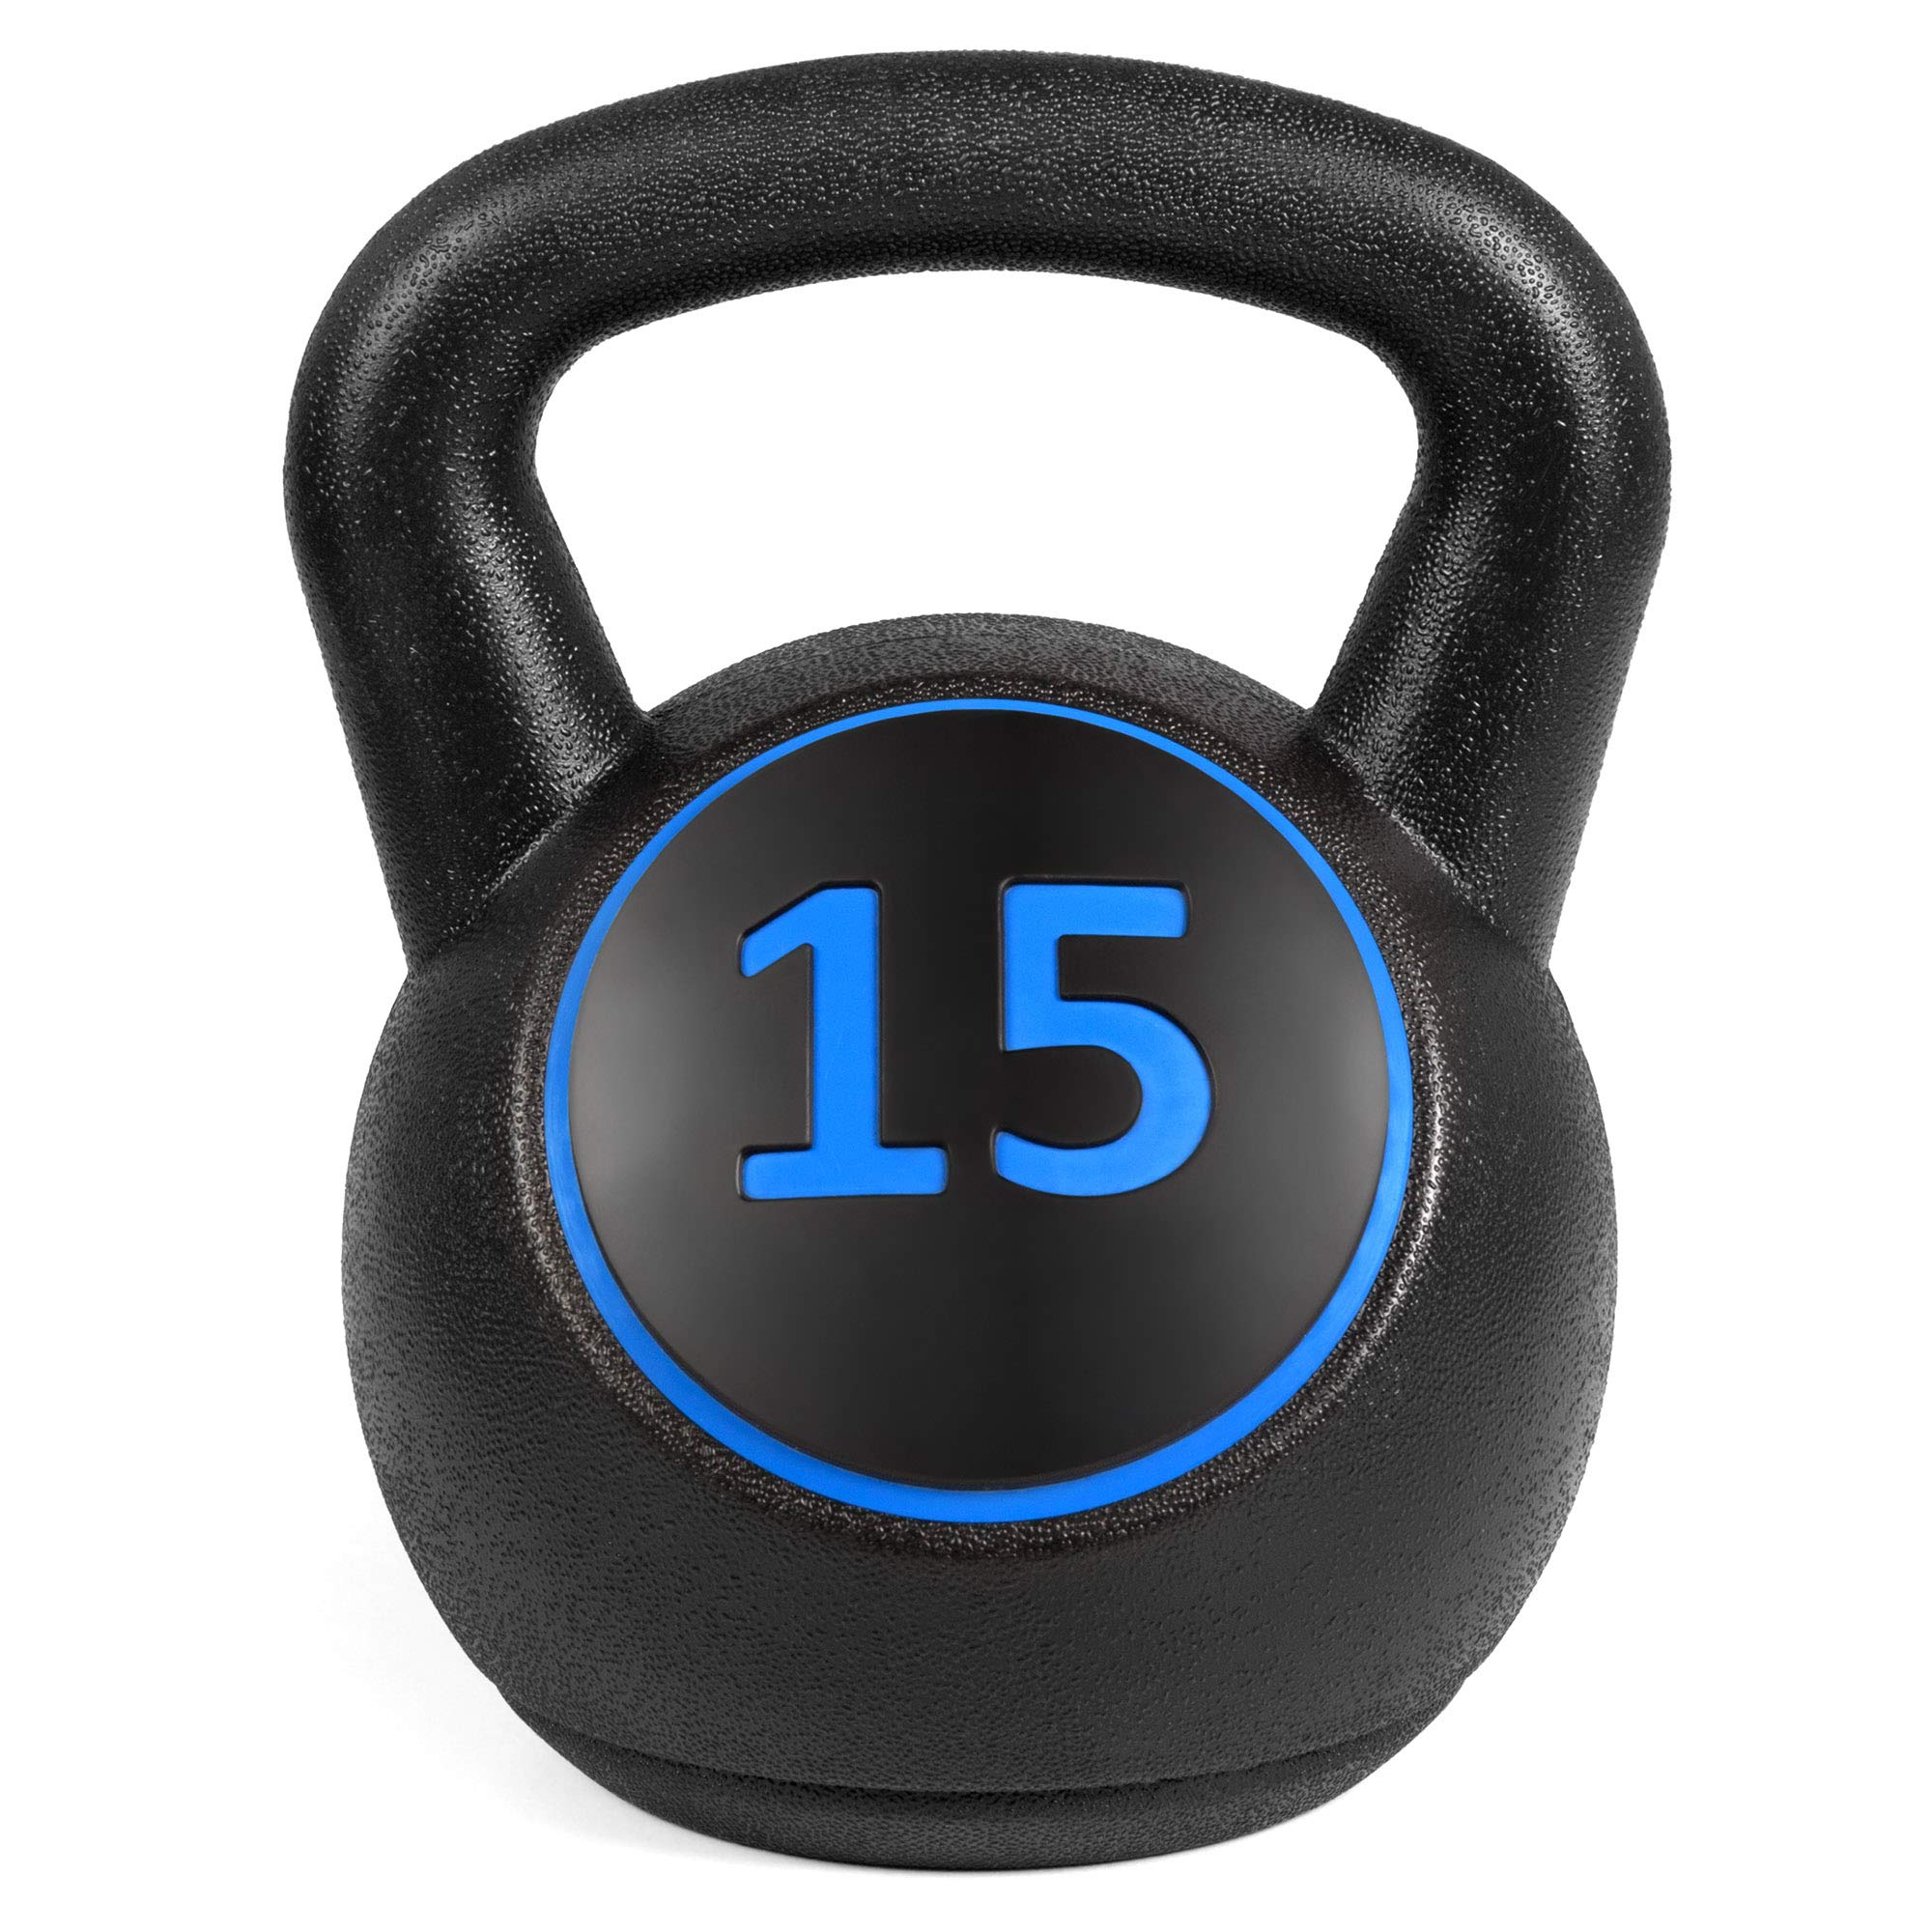 Best Choice Products 3-Piece HDPE Kettlebell Exercise Fitness Weight Set for Full Body Workout w/ 5lb, 10lb, 15lb Weights, Wide Grips, Base Rack - Black by Best Choice Products (Image #5)